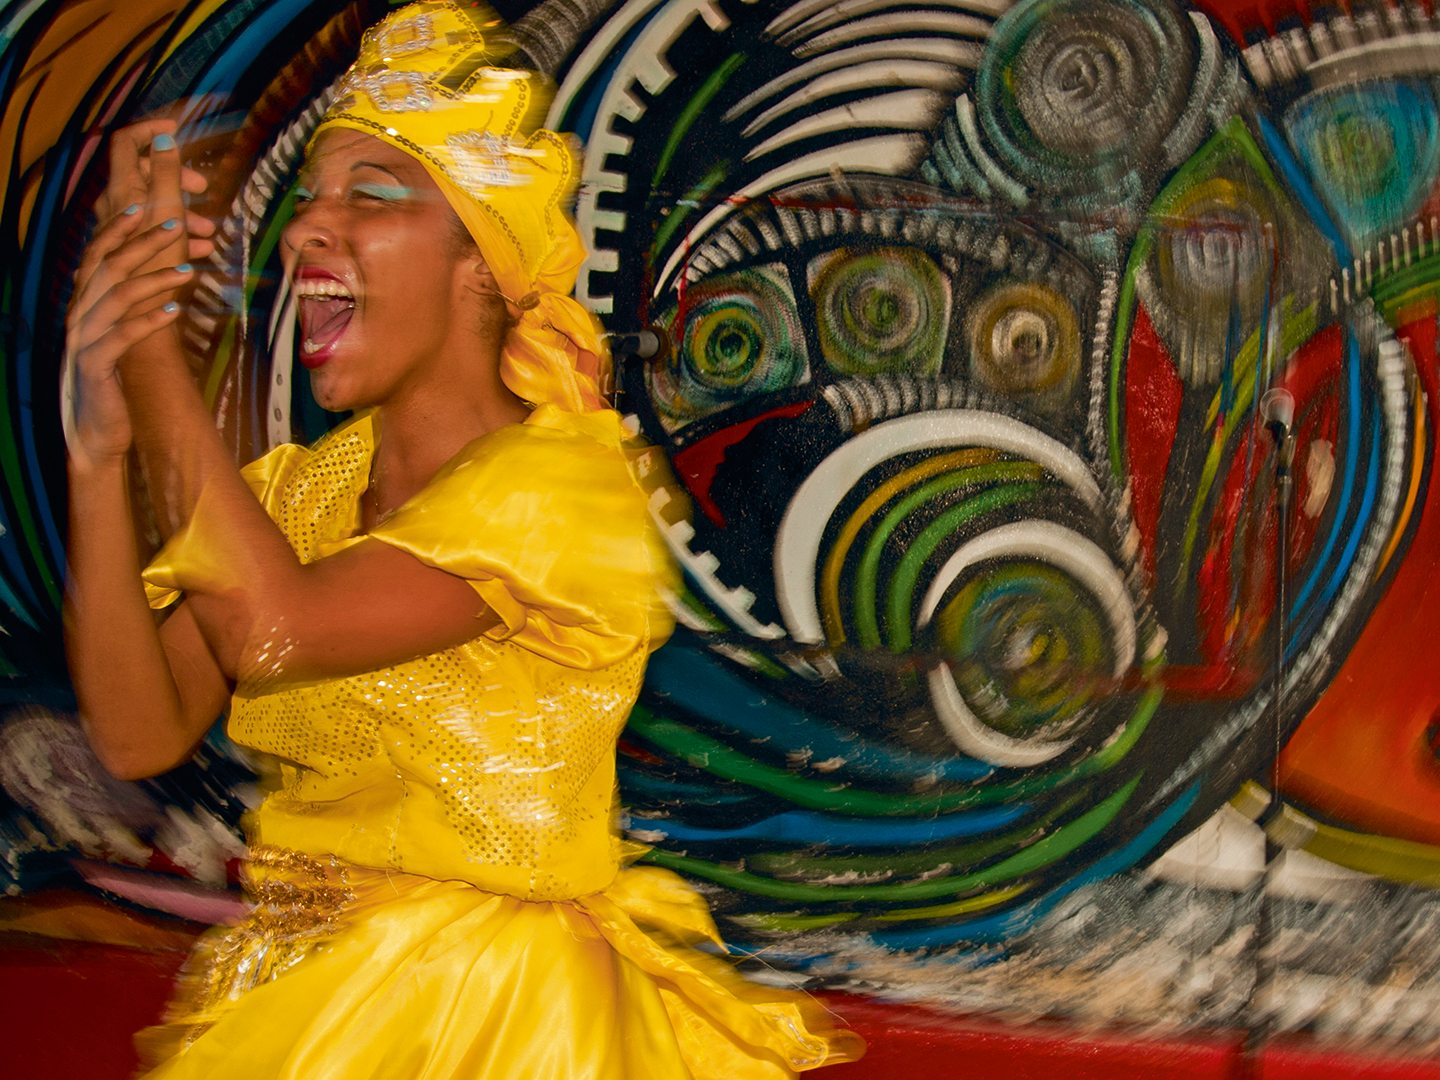 In Havana's Callejón de Hamel project known for its Afro-Cuban art, a young woman performs the ritualized dance of the orisha Ochún, the saint of sensual and flirtatious femininity. Ochún can always be identified by her yellow dress. Photo: Britt Basel